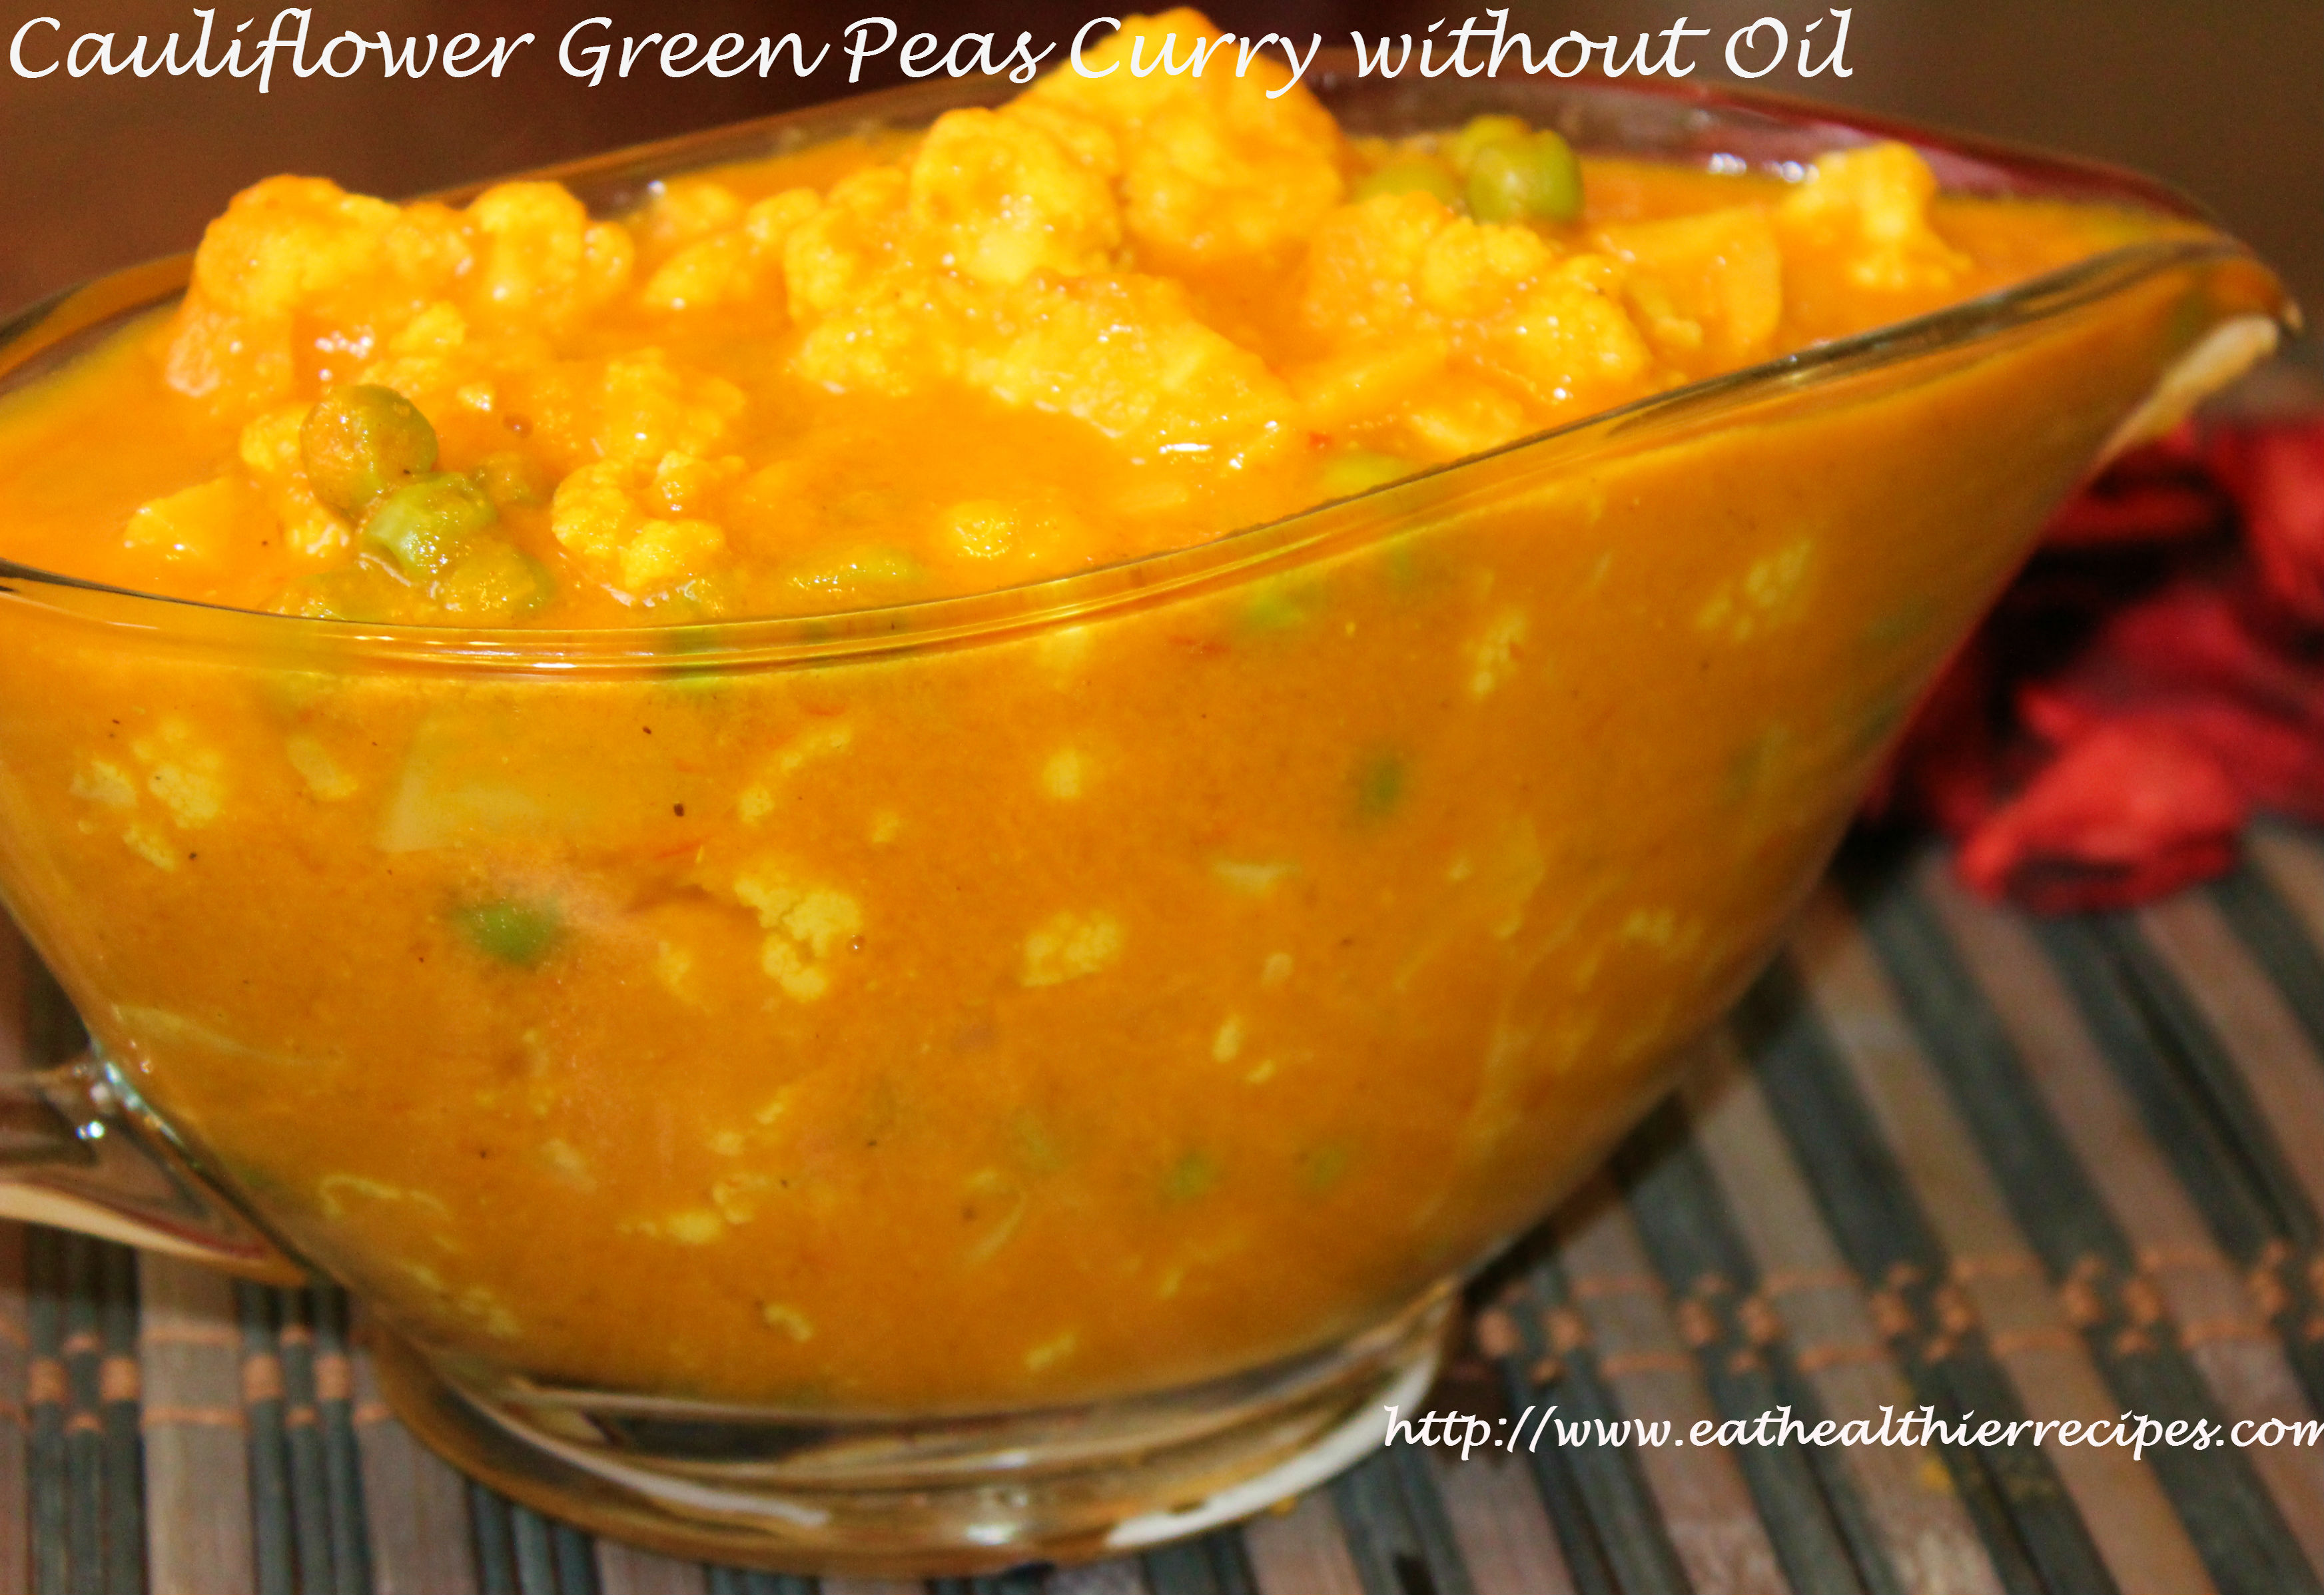 Cauliflower Green Peas Curry without Oil